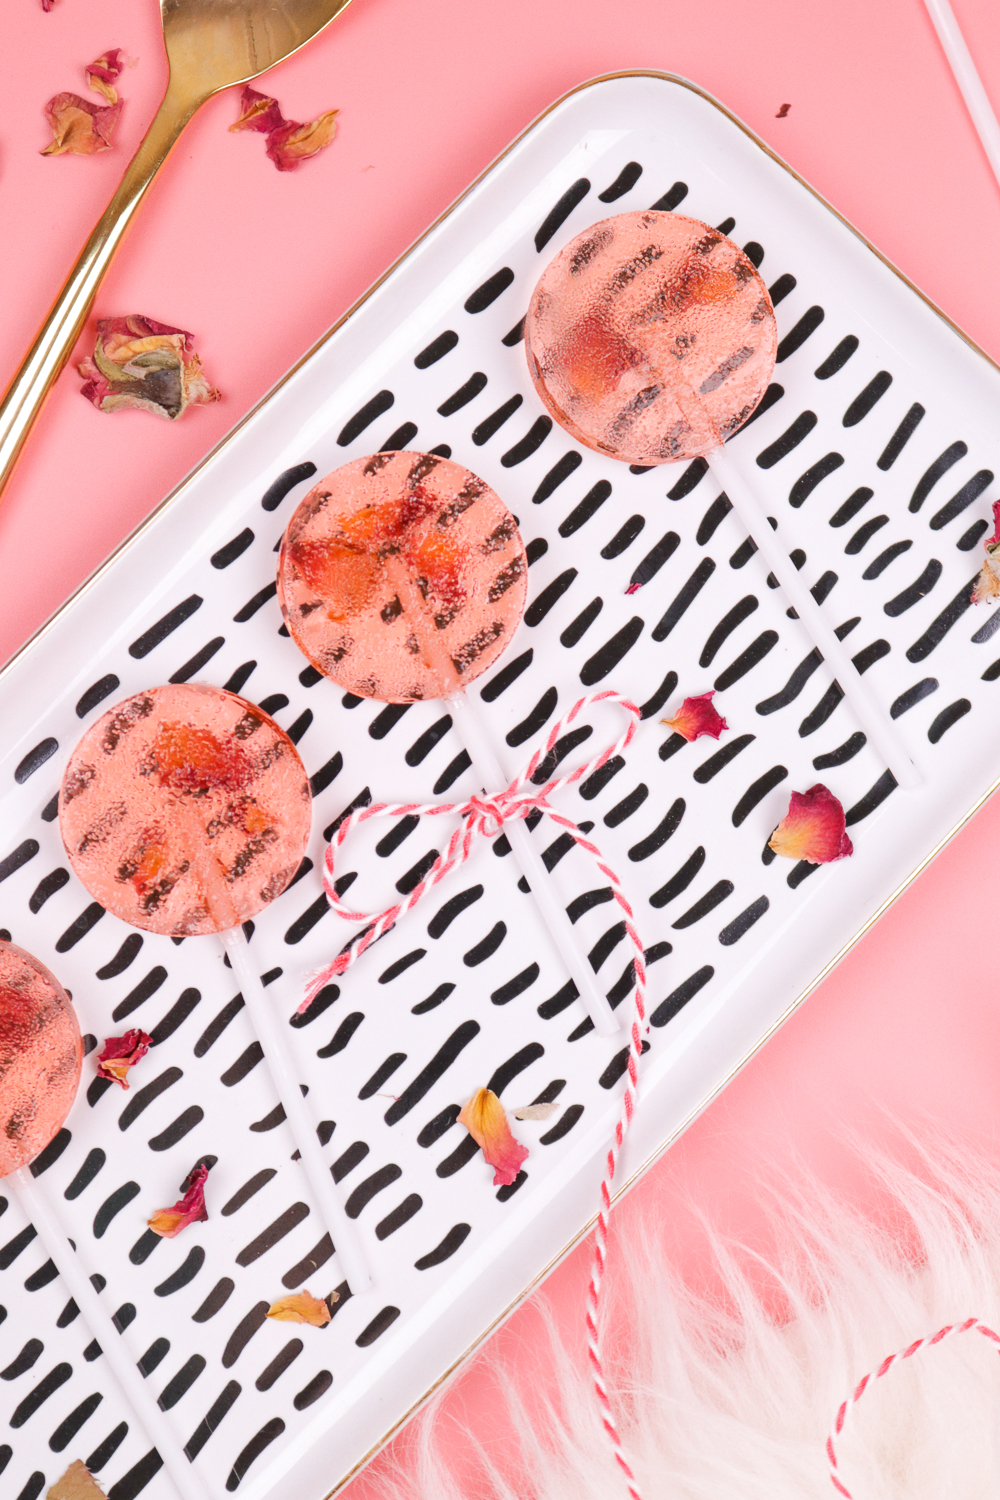 Top 20 Valentine's Projects - Club Crafted's Rose Lollipops | Squirrelly Minds